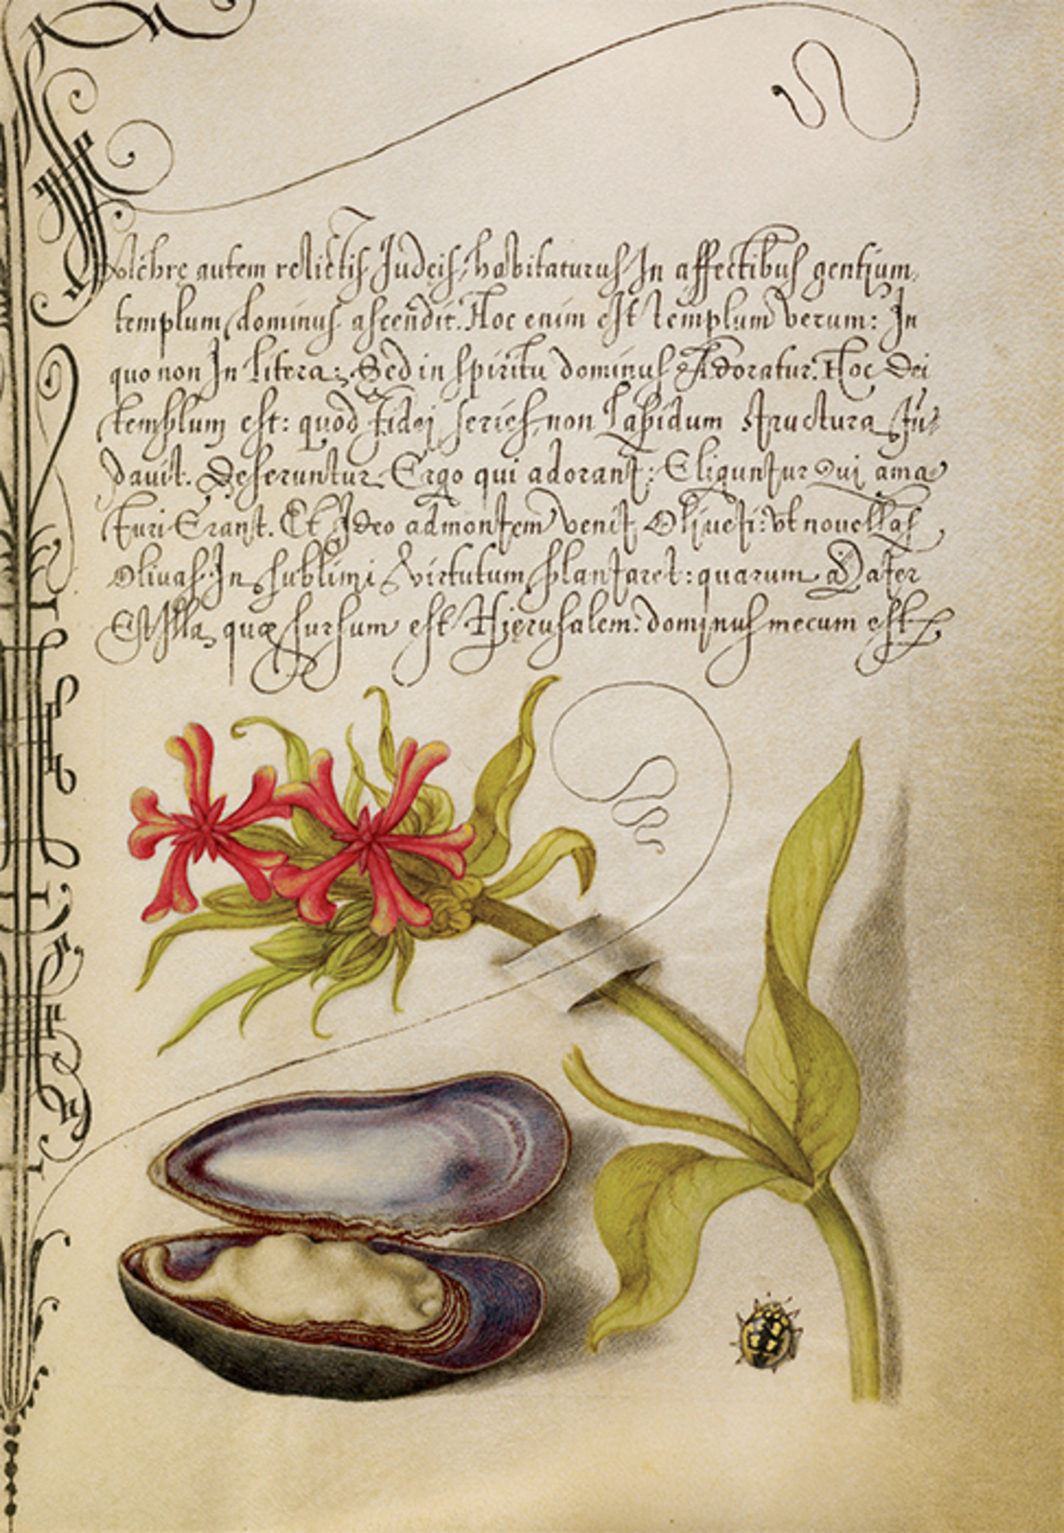 "Joris Hoefnagel, Maltese cross, mussel, and ladybird, 1591–96, watercolor, gold and silver paint, and ink on parchment, 6 5/8 x 4 7/8"". Page from Mira calligraphiae monumenta, 1561–96. Calligraphy by Georg Bocskay. Photo: The Getty Center, Los Angeles/Open Content Program."